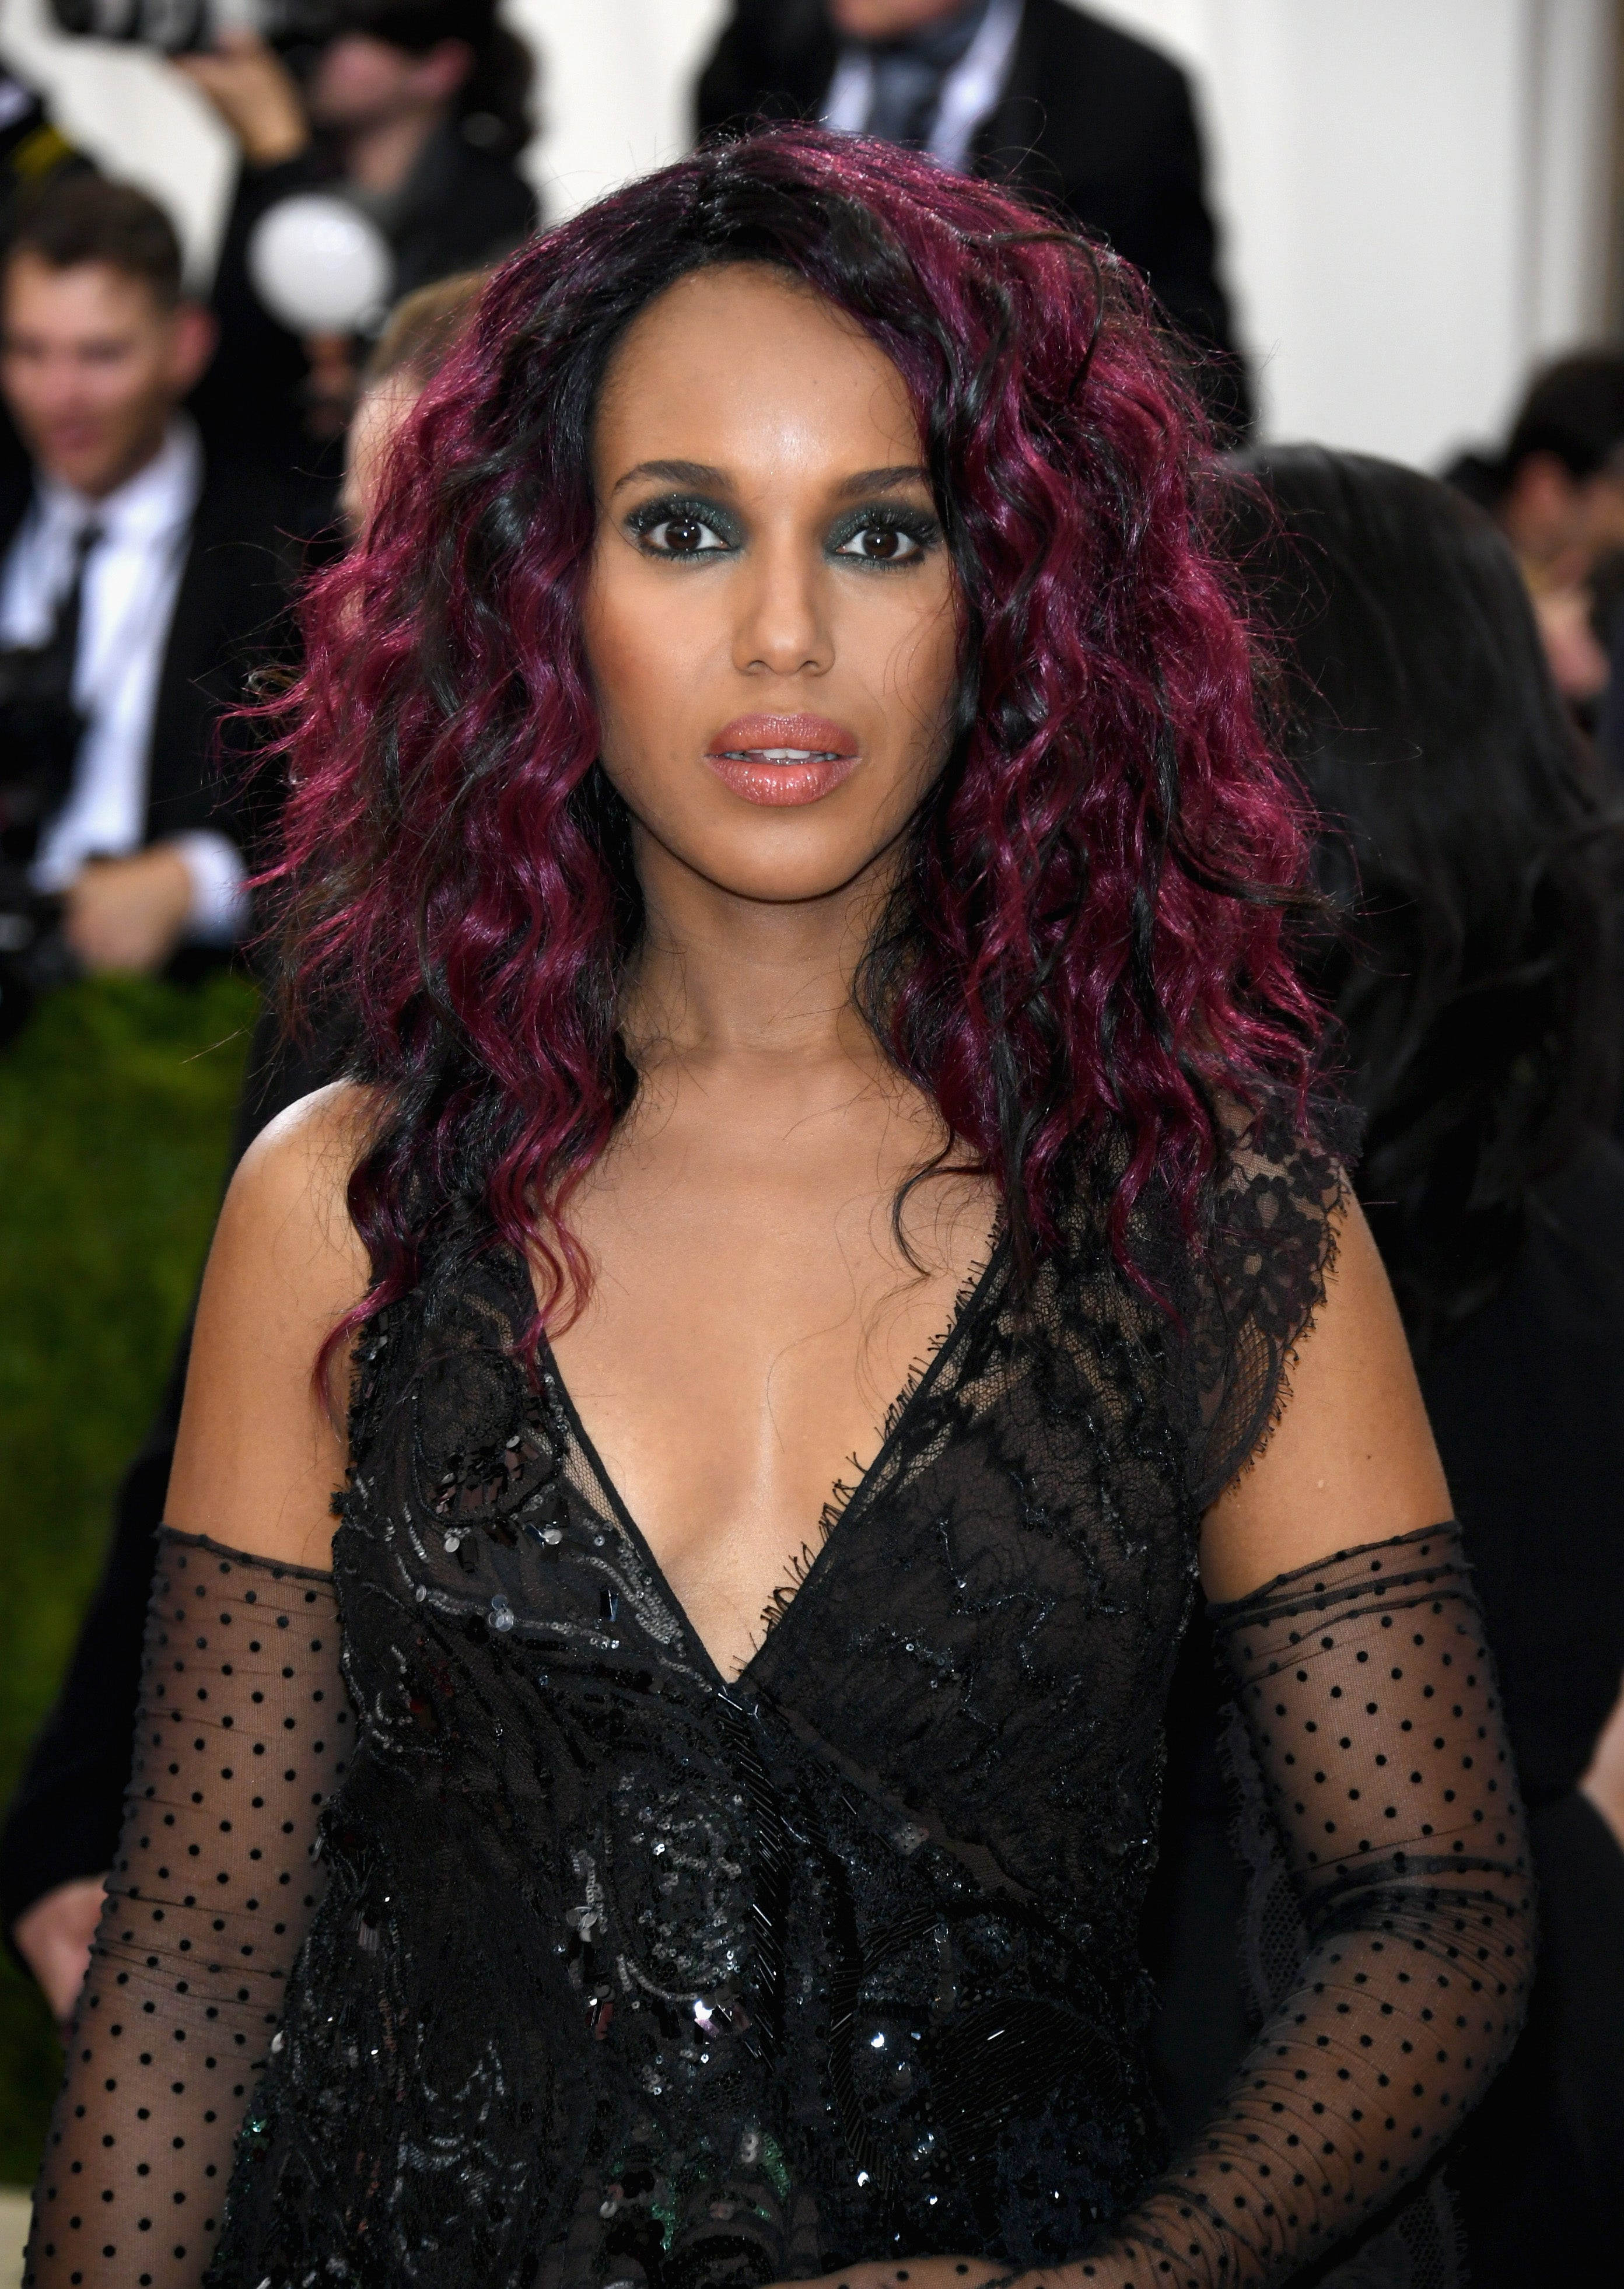 Kerry Washington Hits MET Gala With Purple Hair, Get The Look Now